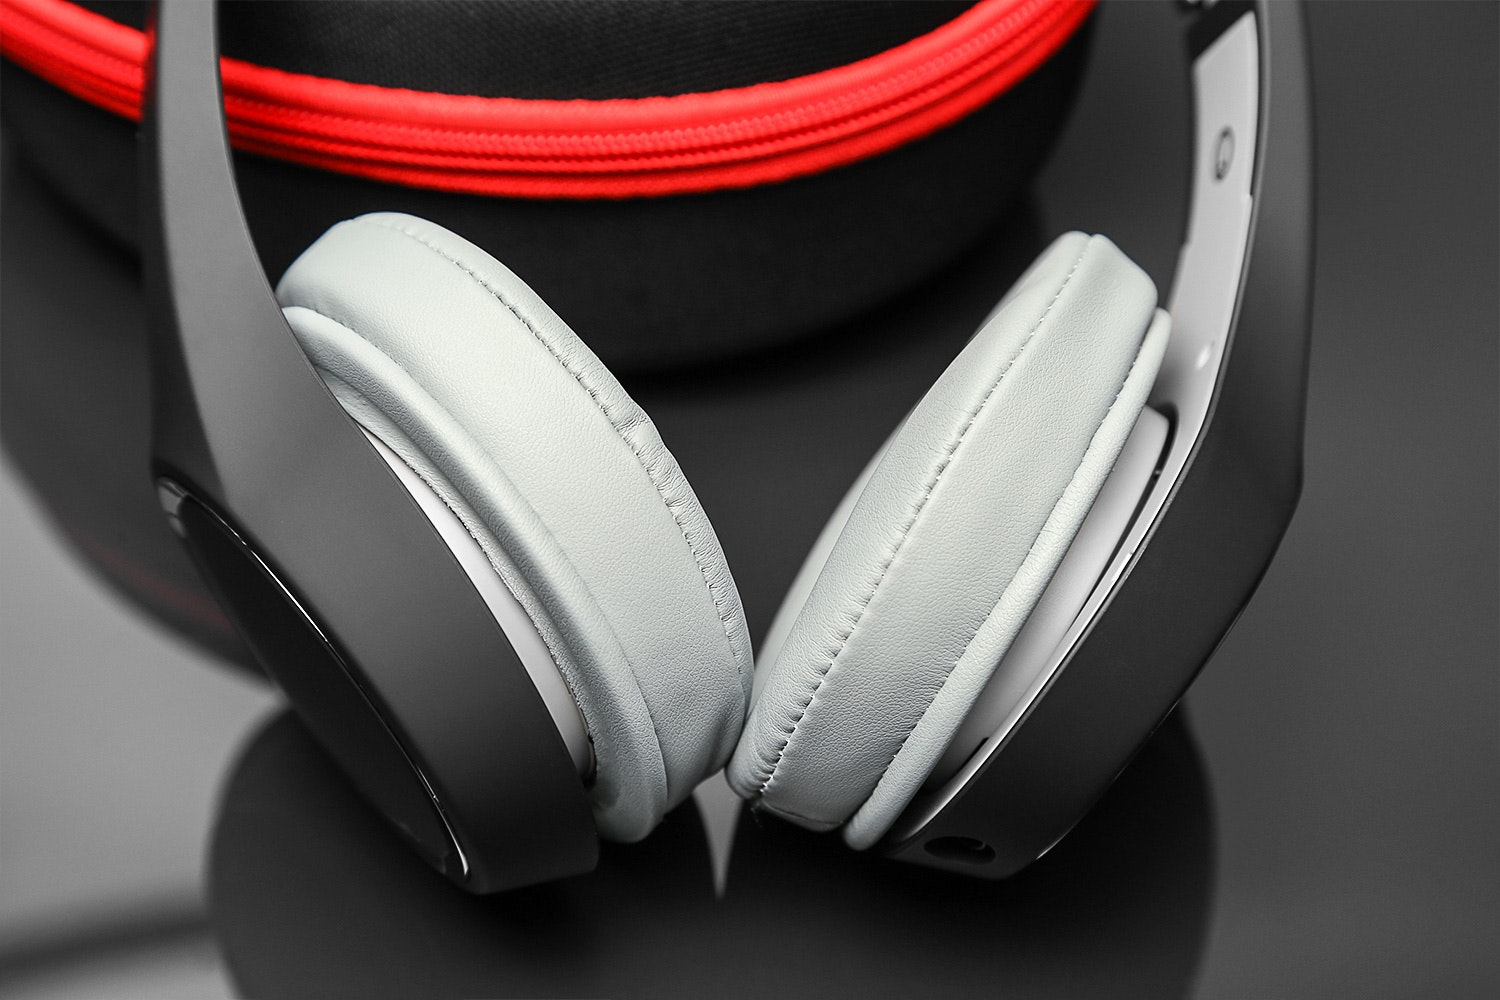 Brainwavz HM2 Portable Headphones